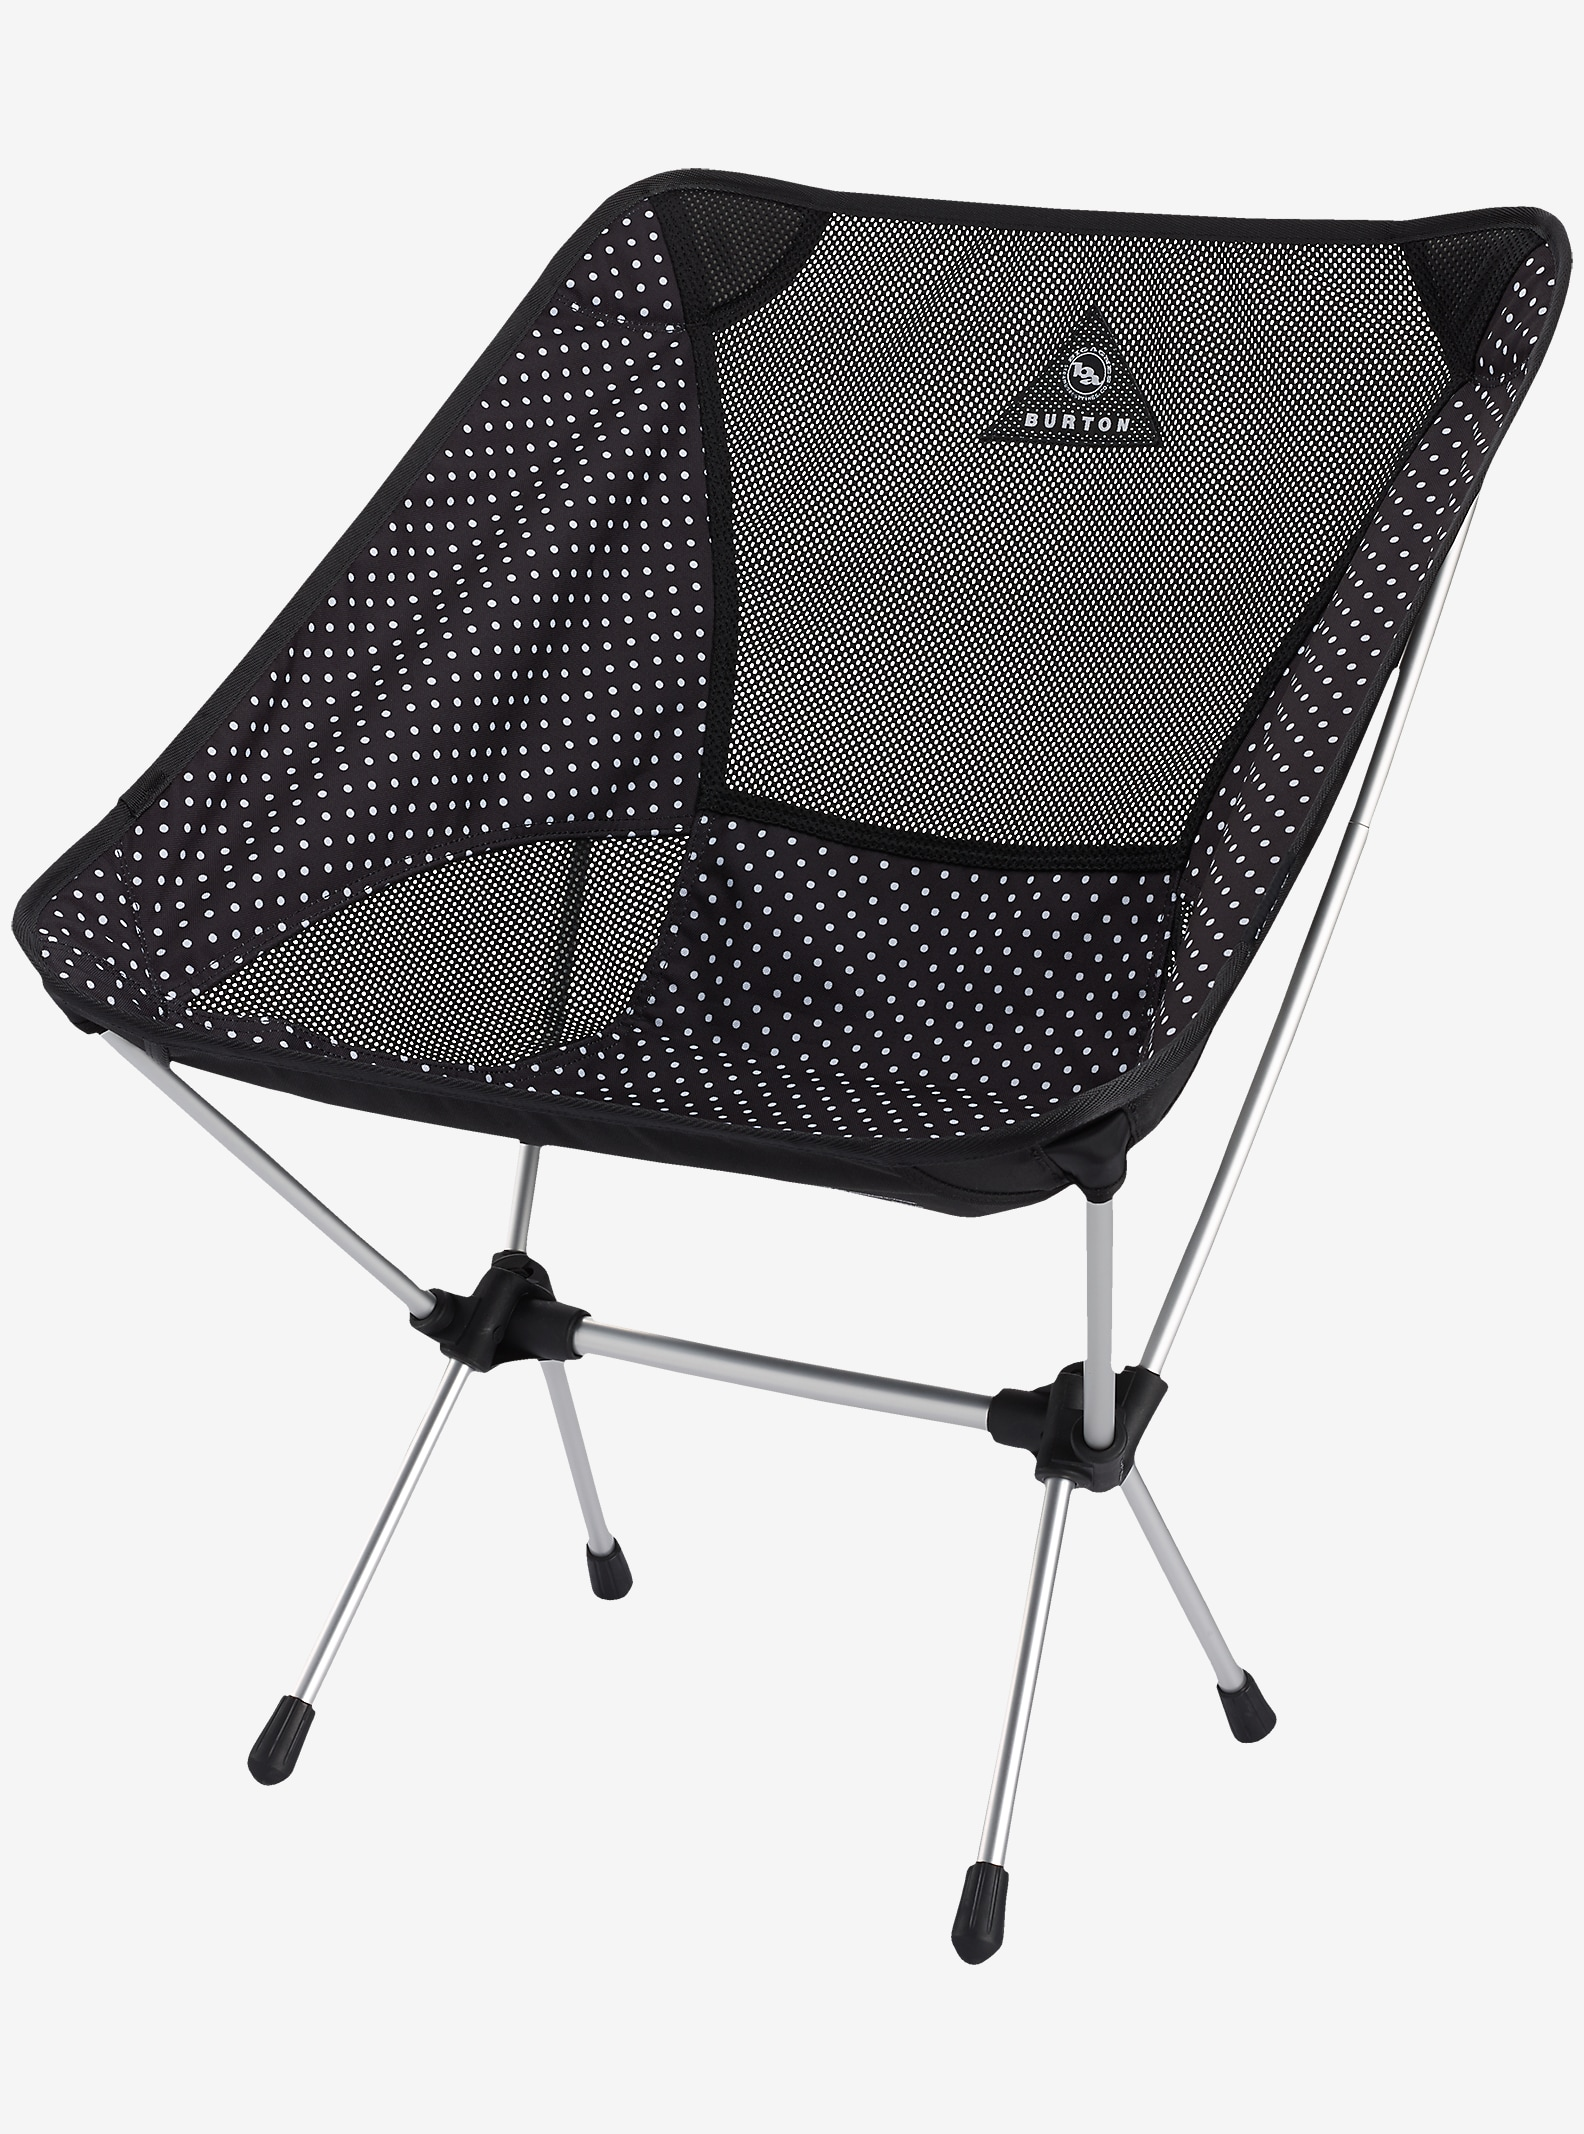 Big Agnes x Helinox x Burton Camp Chair shown in Black Polka Dot